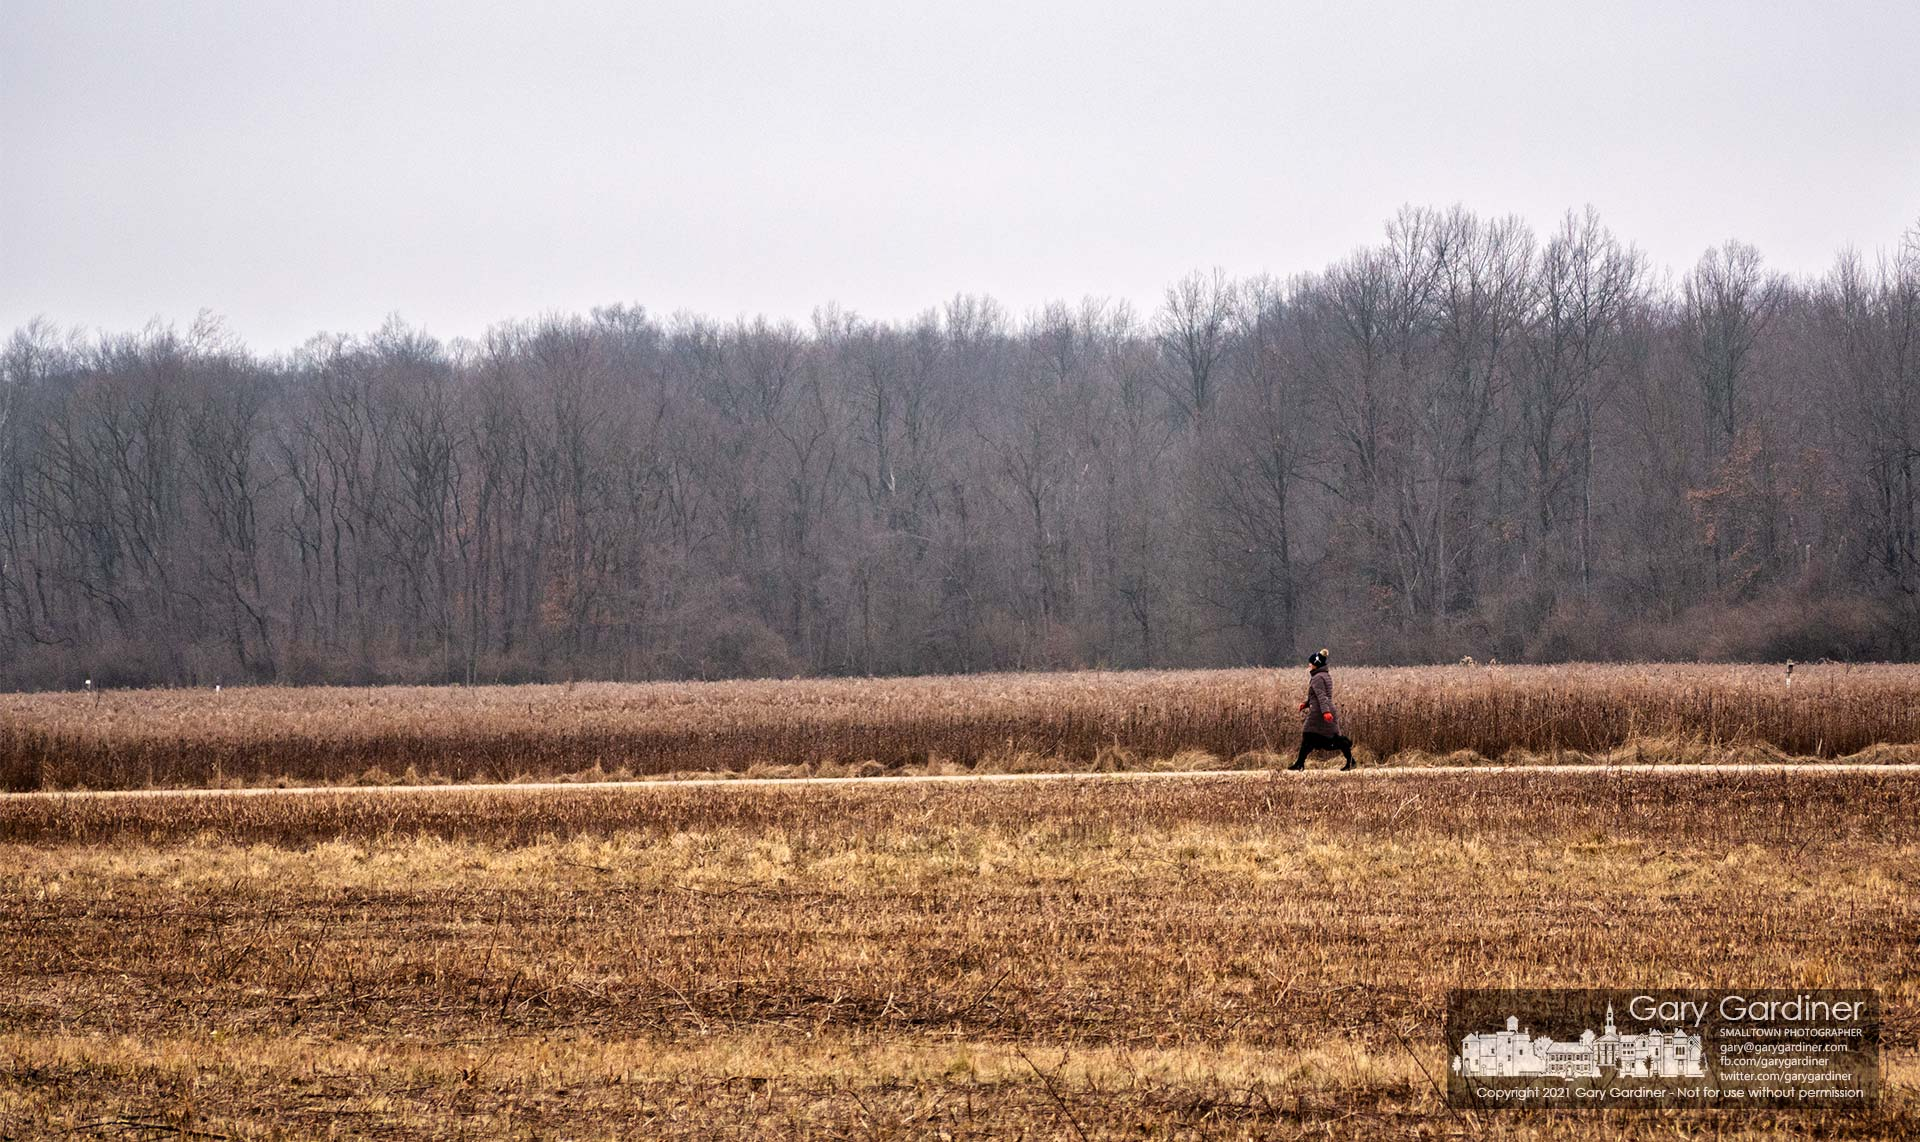 A woman walks the Spring Creek Trail across a section of the prairie at the center of Sharon Woods Metro Park. My Final Photo for Jan. 12, 2021.